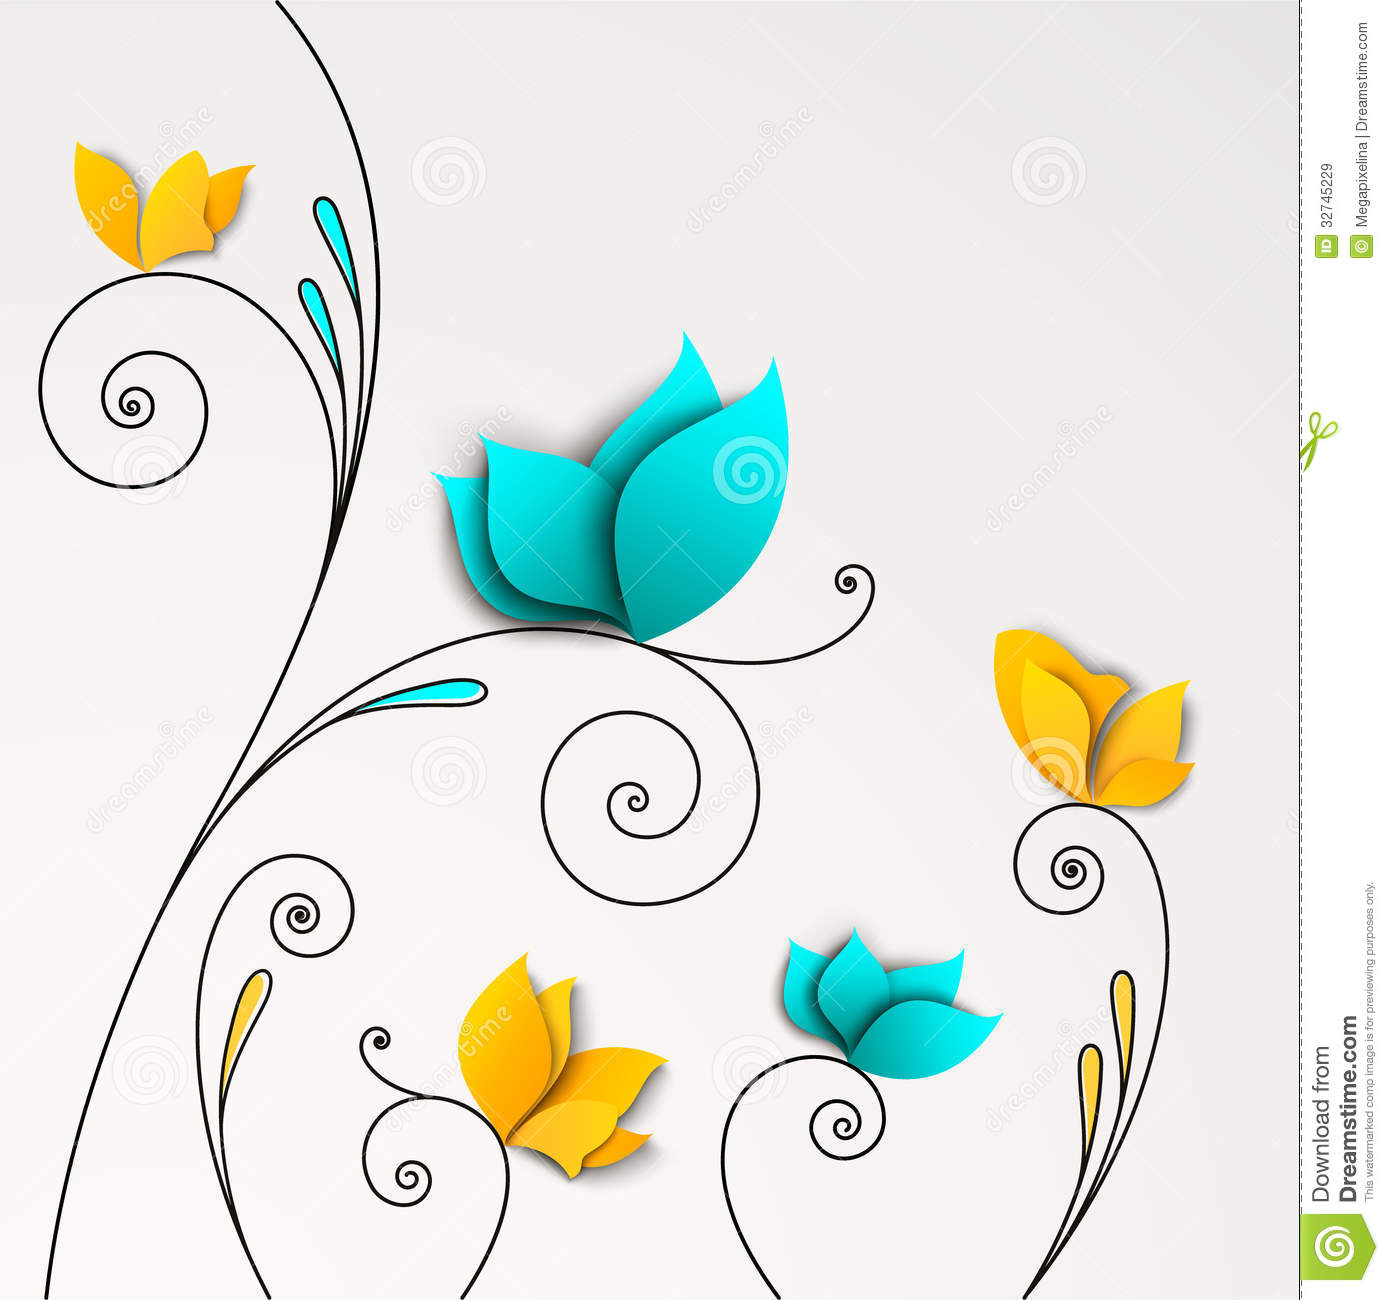 Five Abstract Paper Flowers Royalty Free Stock Images - Image ...